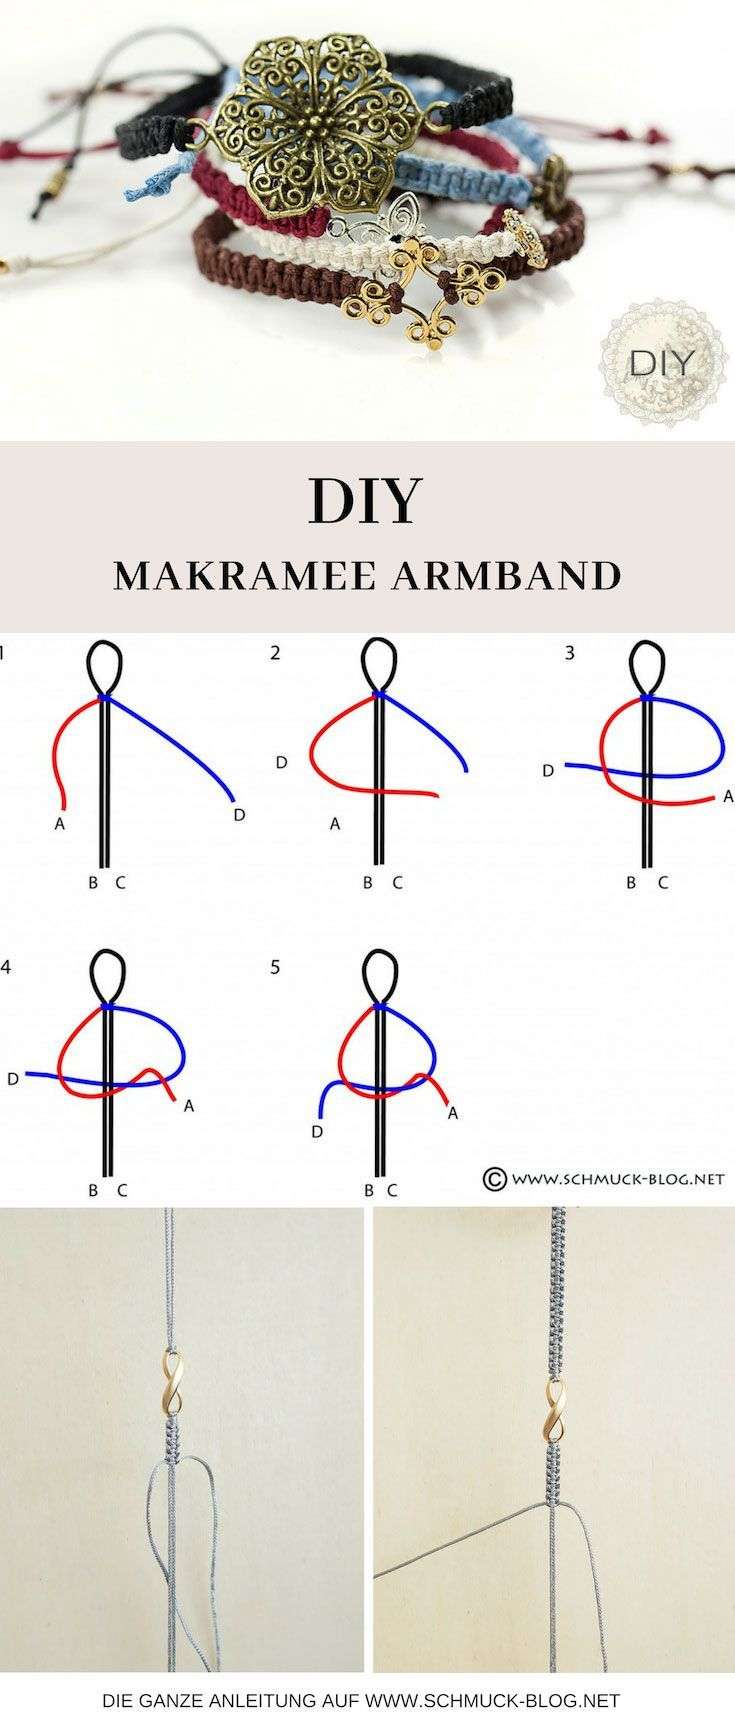 Make macrame bracelets – Simple instructions